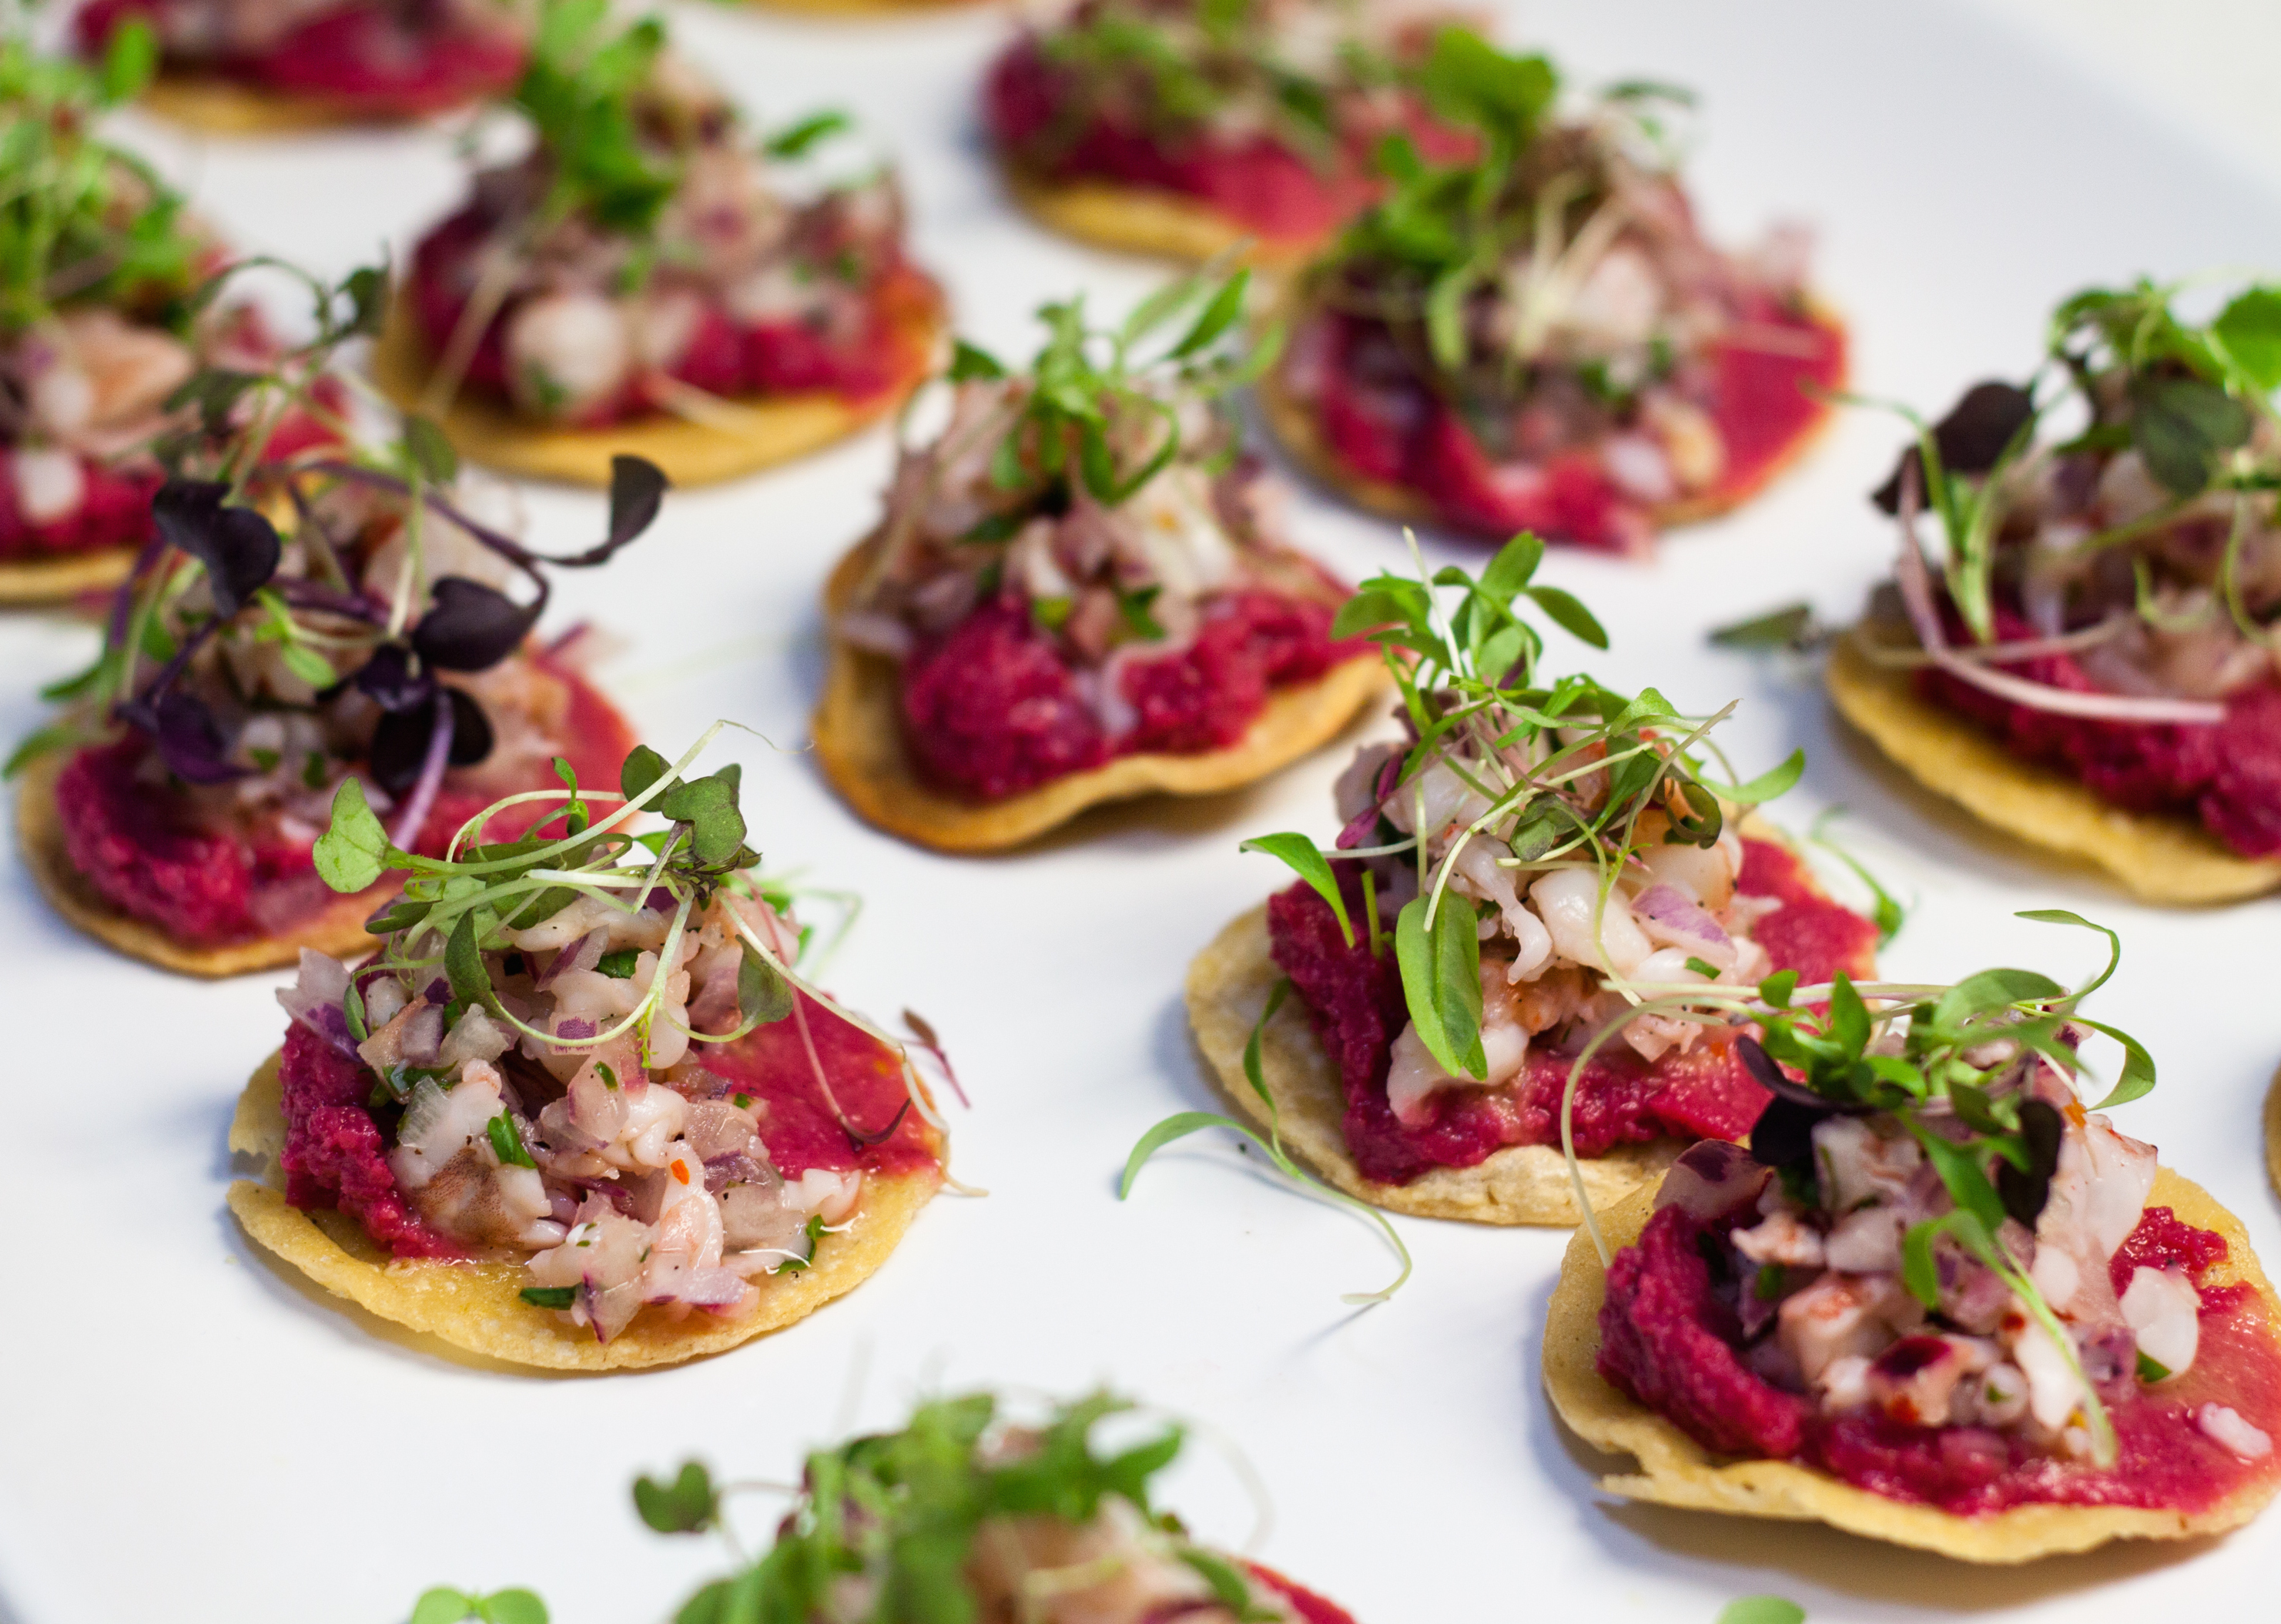 Tiger Shrimp Ceviche with Red Beet Hummus